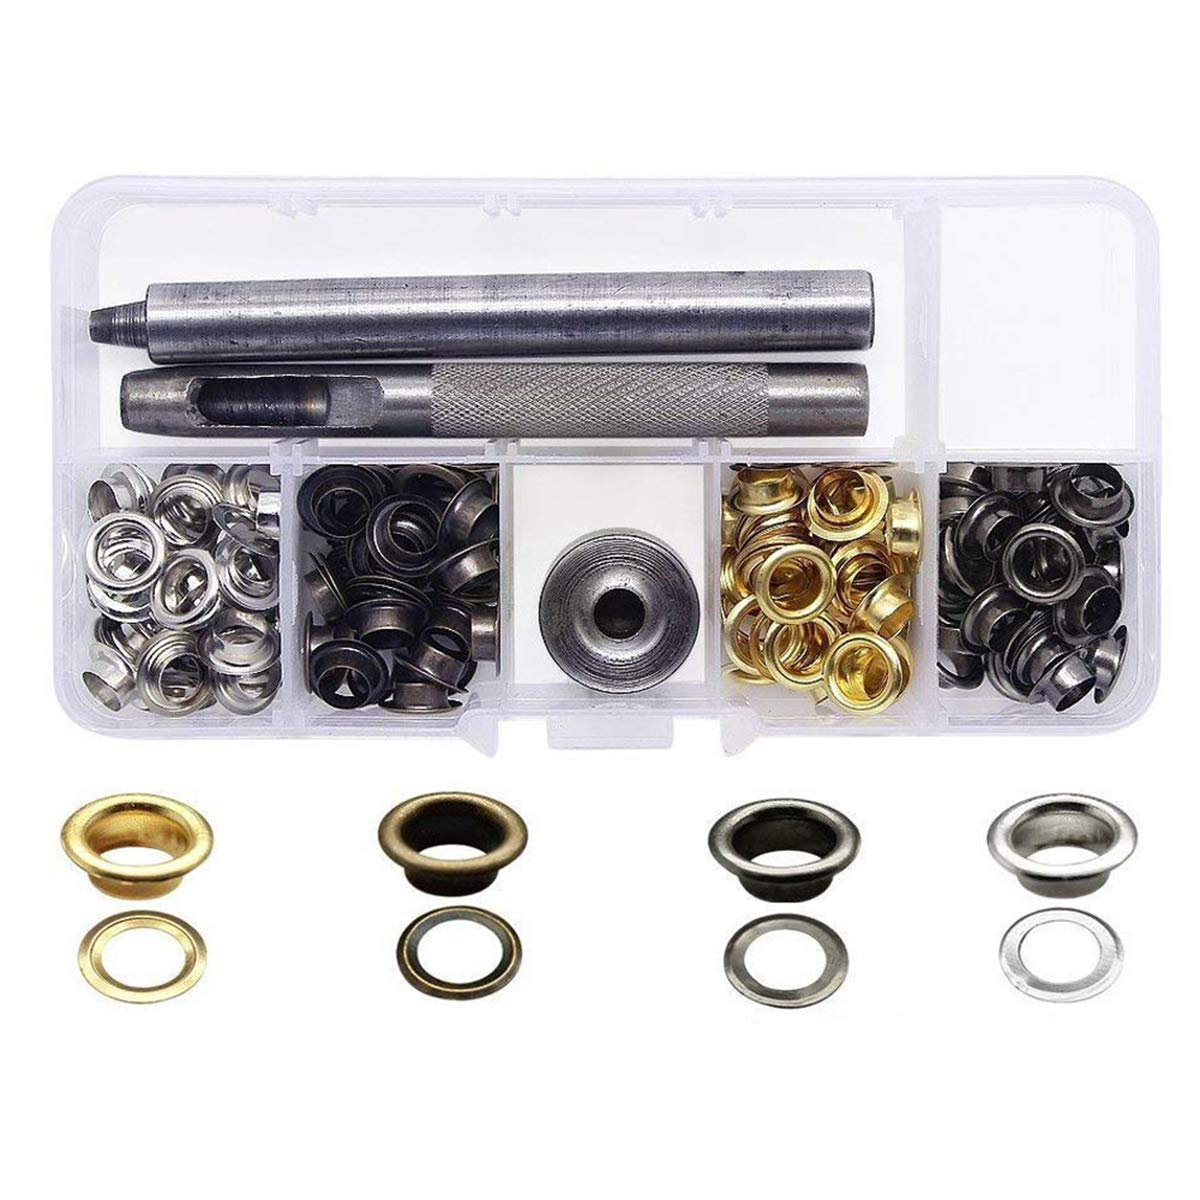 Yakamoz Grommets Kits with 120 Set Grommets, 3 Pieces Fixing Tools for Canvas Clothes Leather